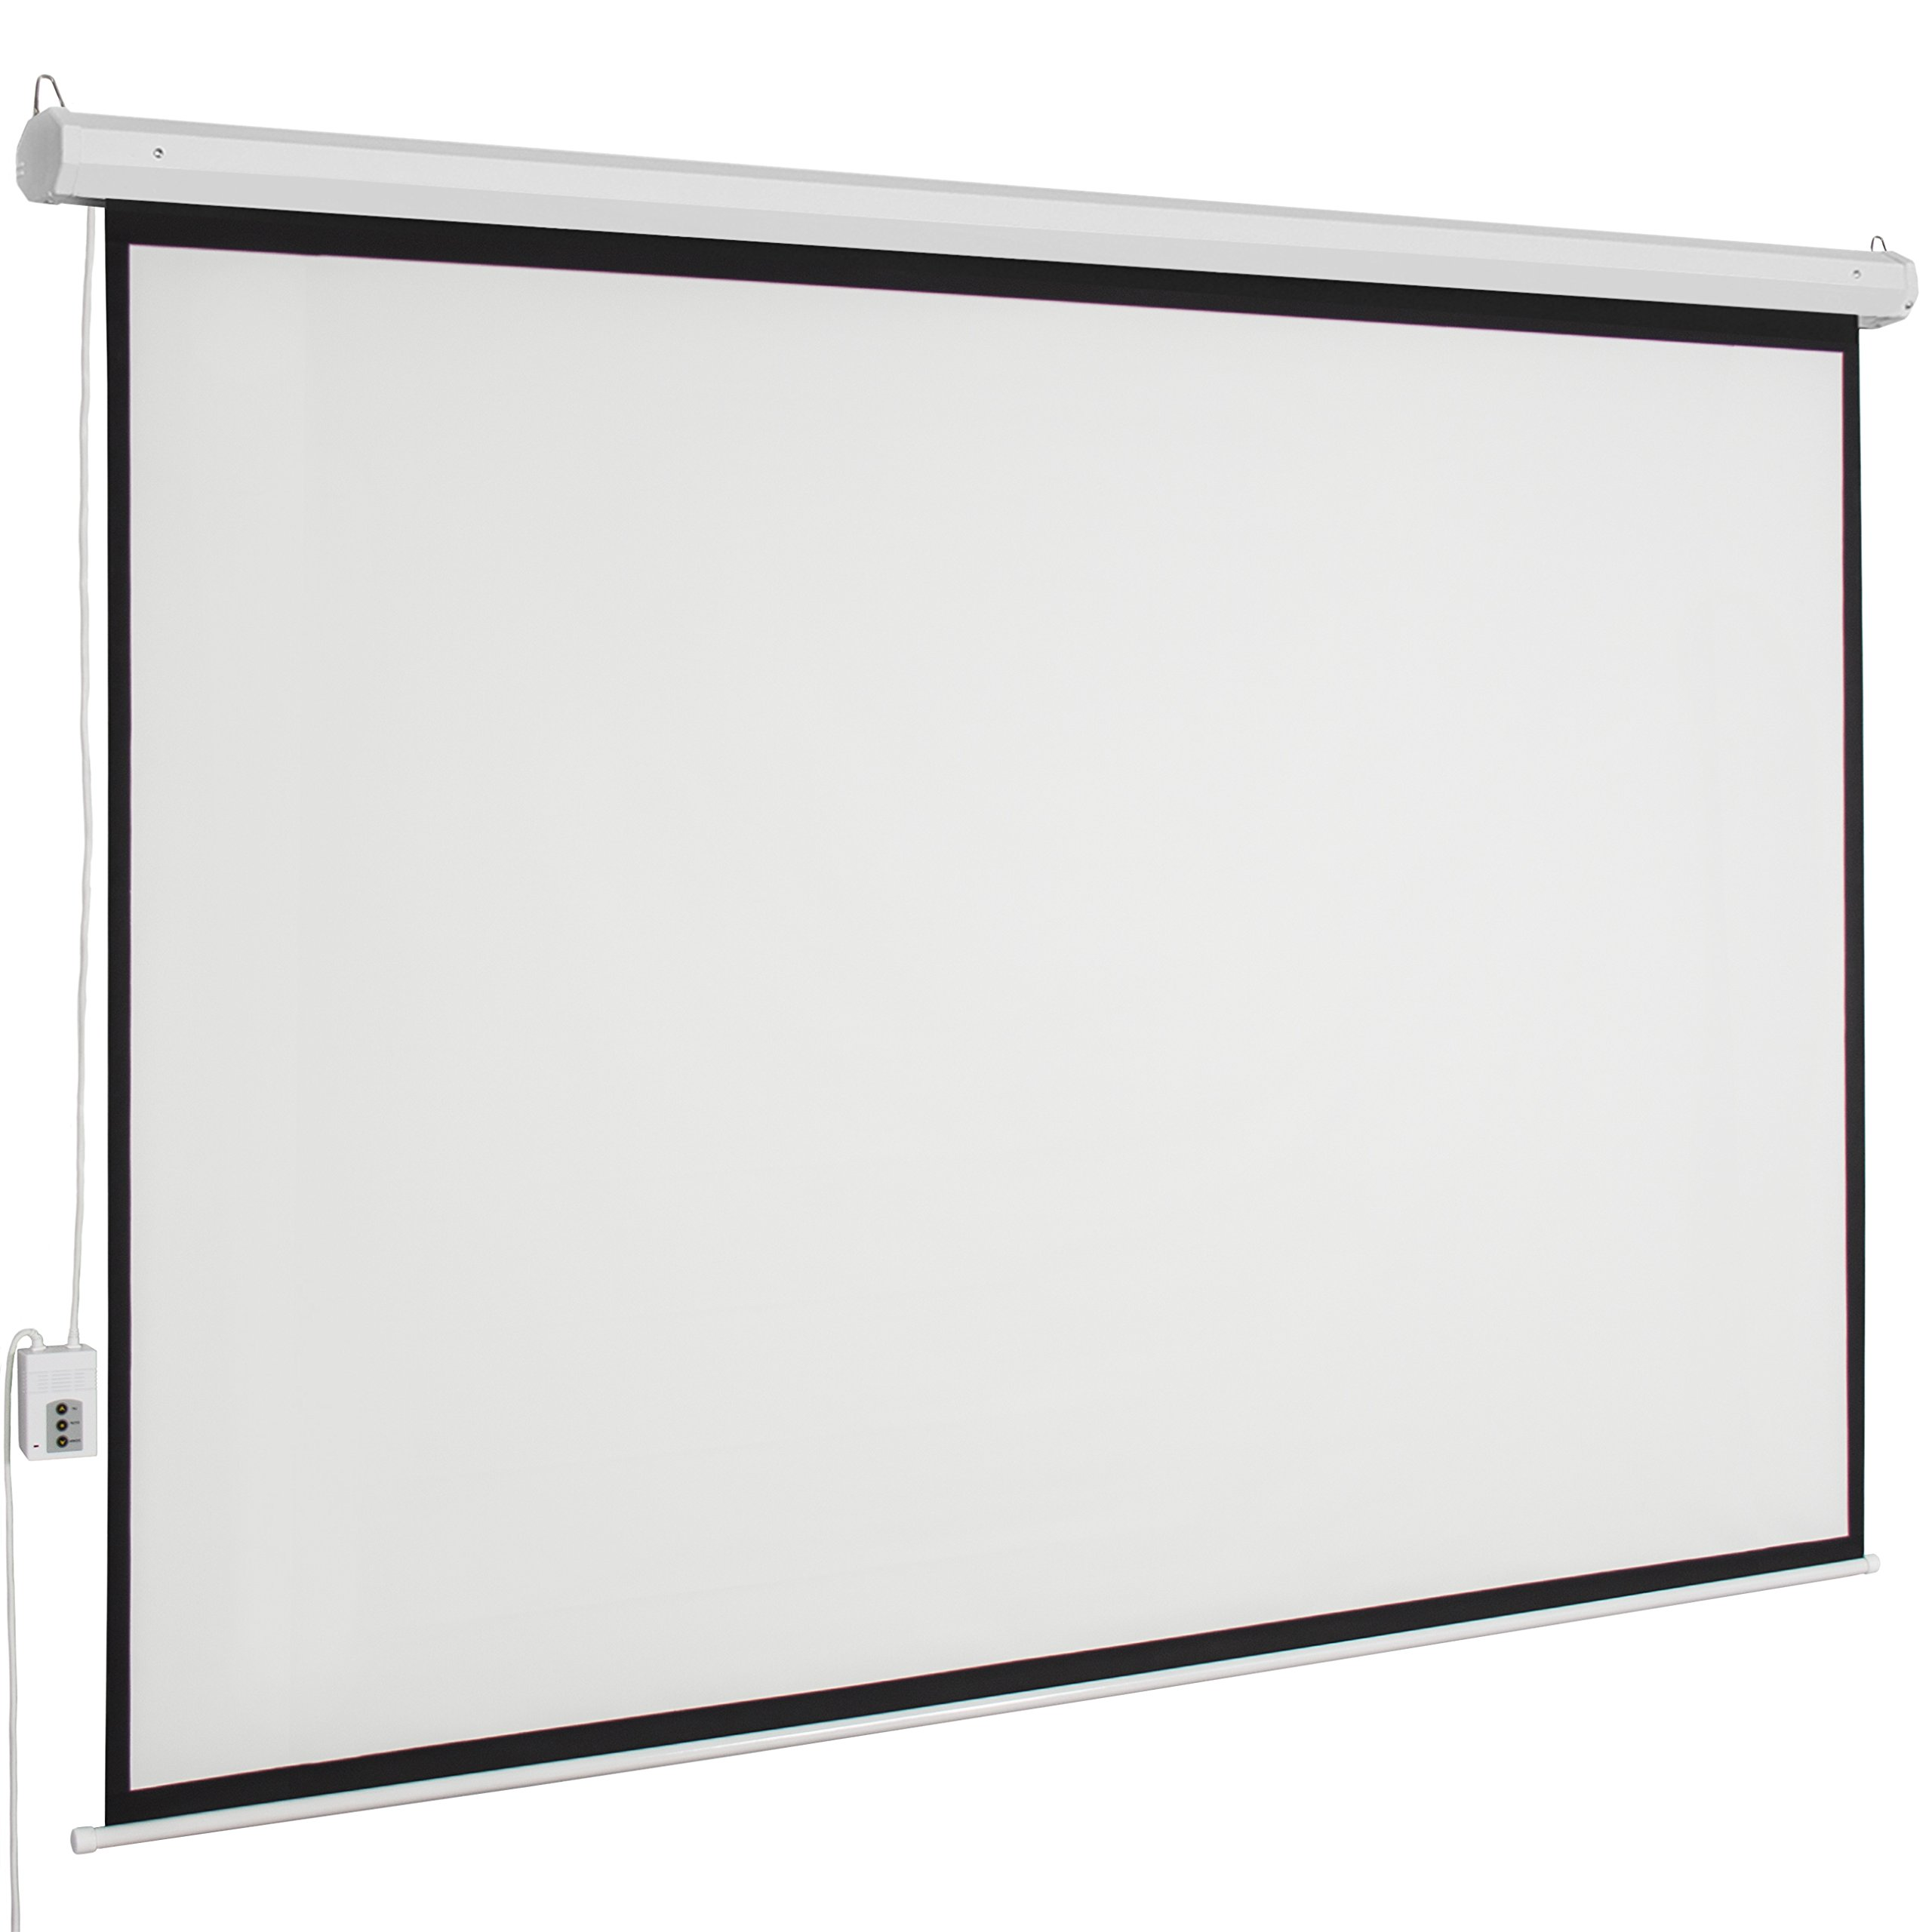 Galleon best choice products motorized electric auto hd for 100 inch motorized projector screen